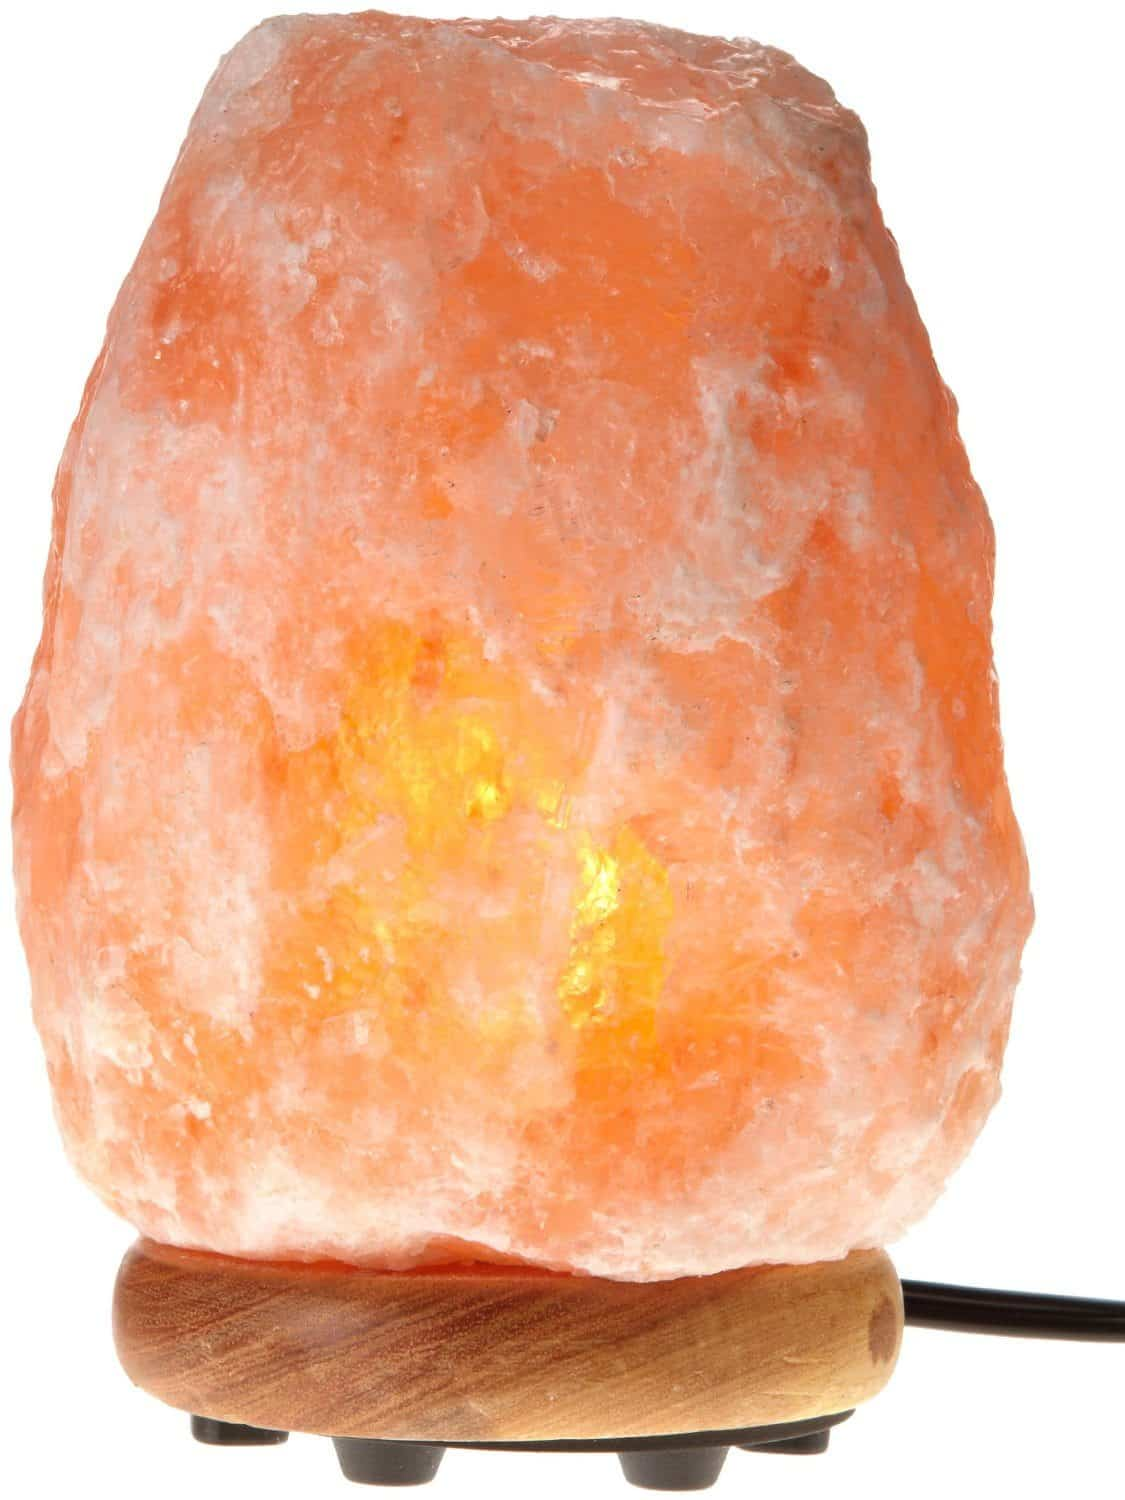 Salt Lamps For Breathing Problems : 10 Reasons to Place A Himalayan Salt Lamp In Your Home DIY Cozy Home